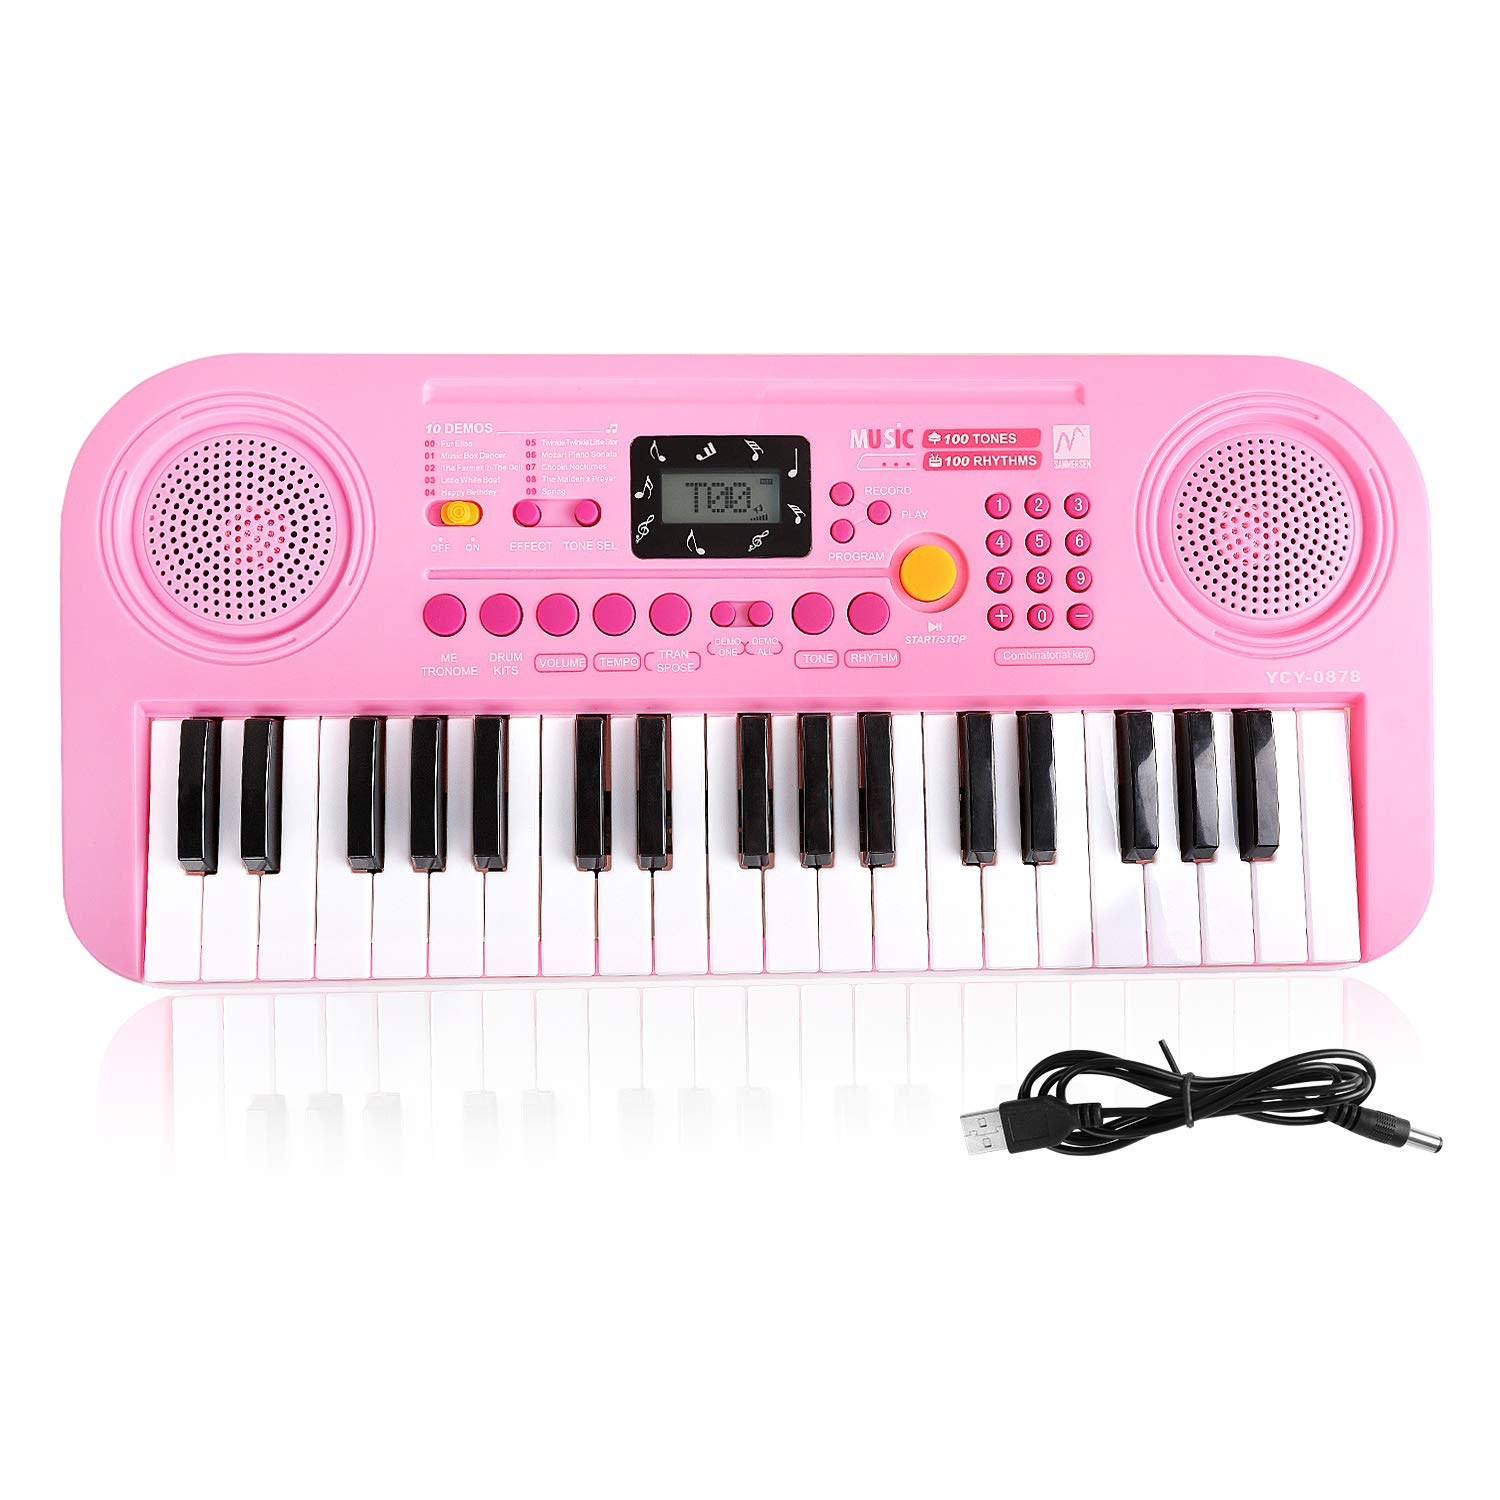 TWFRIC Kids Piano Keyboard, 37-Key LCD Screen Display Double Speakers Piano Kids Battery Operated USB Piano Keyboards Music Educational Toy Boys Girls Child, Extra Piano Score (Pink) Big Sale!